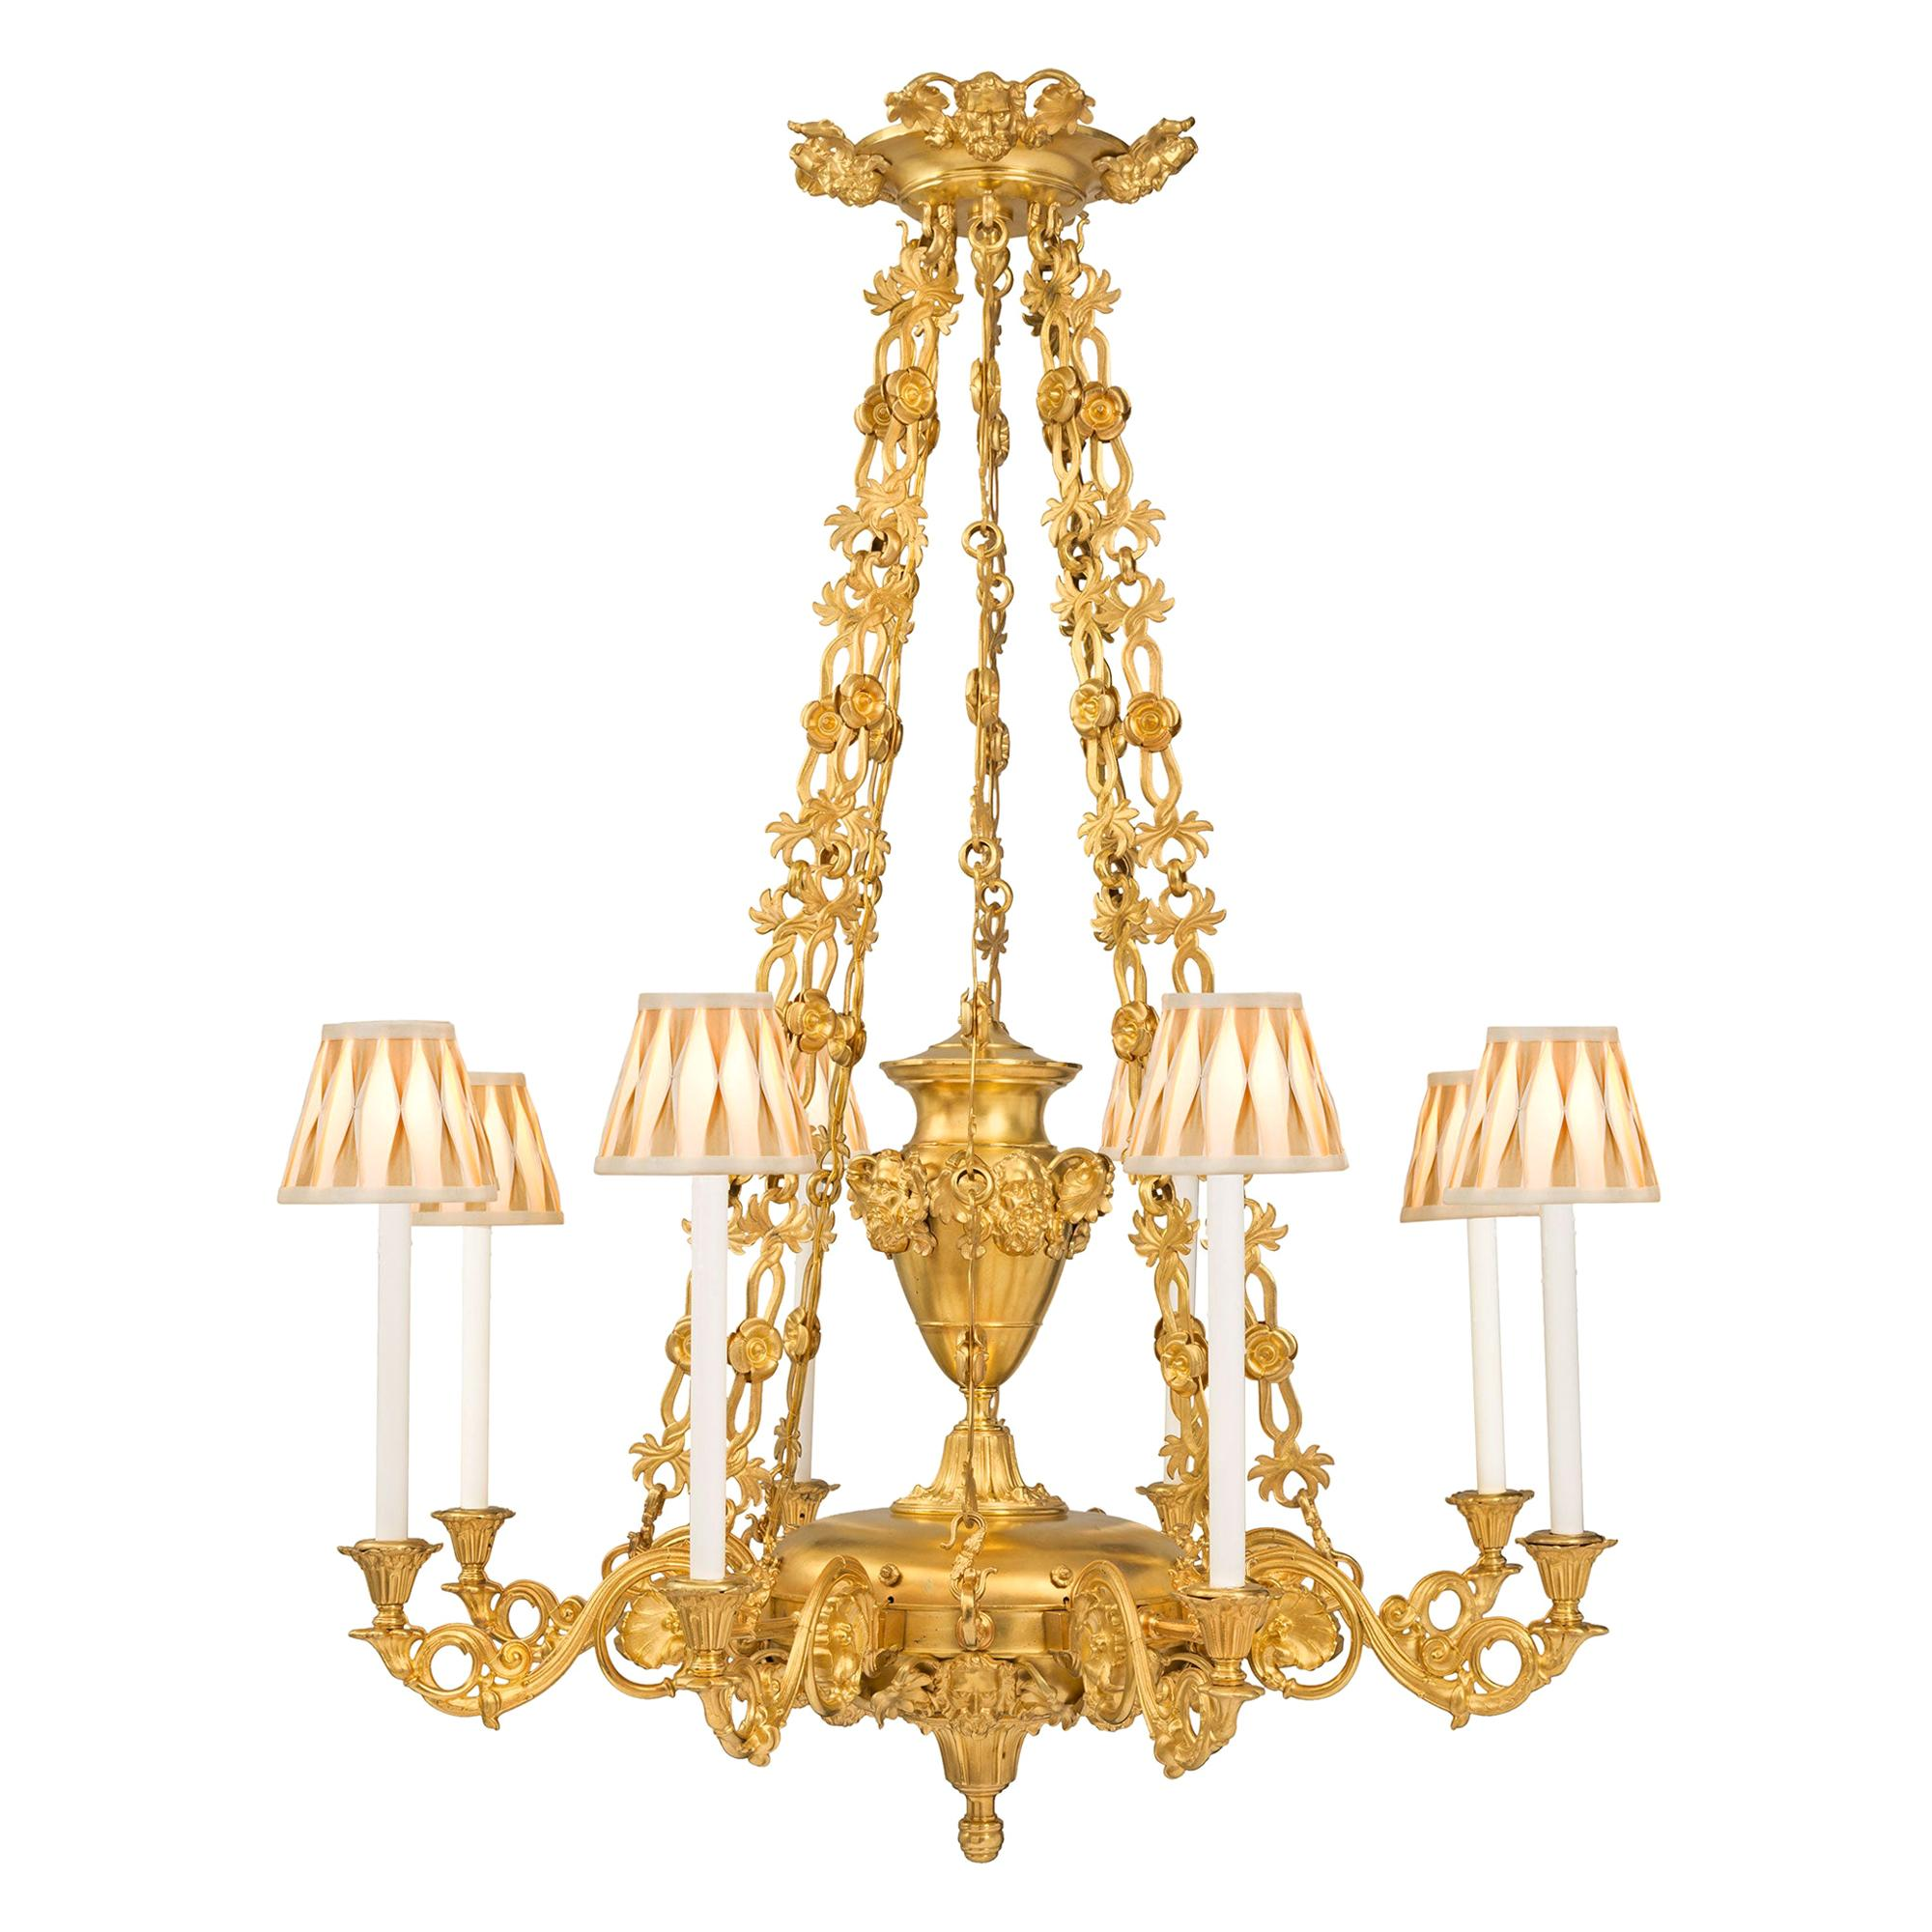 French 19th Century Louis Philippe Period Ormolu Eight-Arm Chandelier